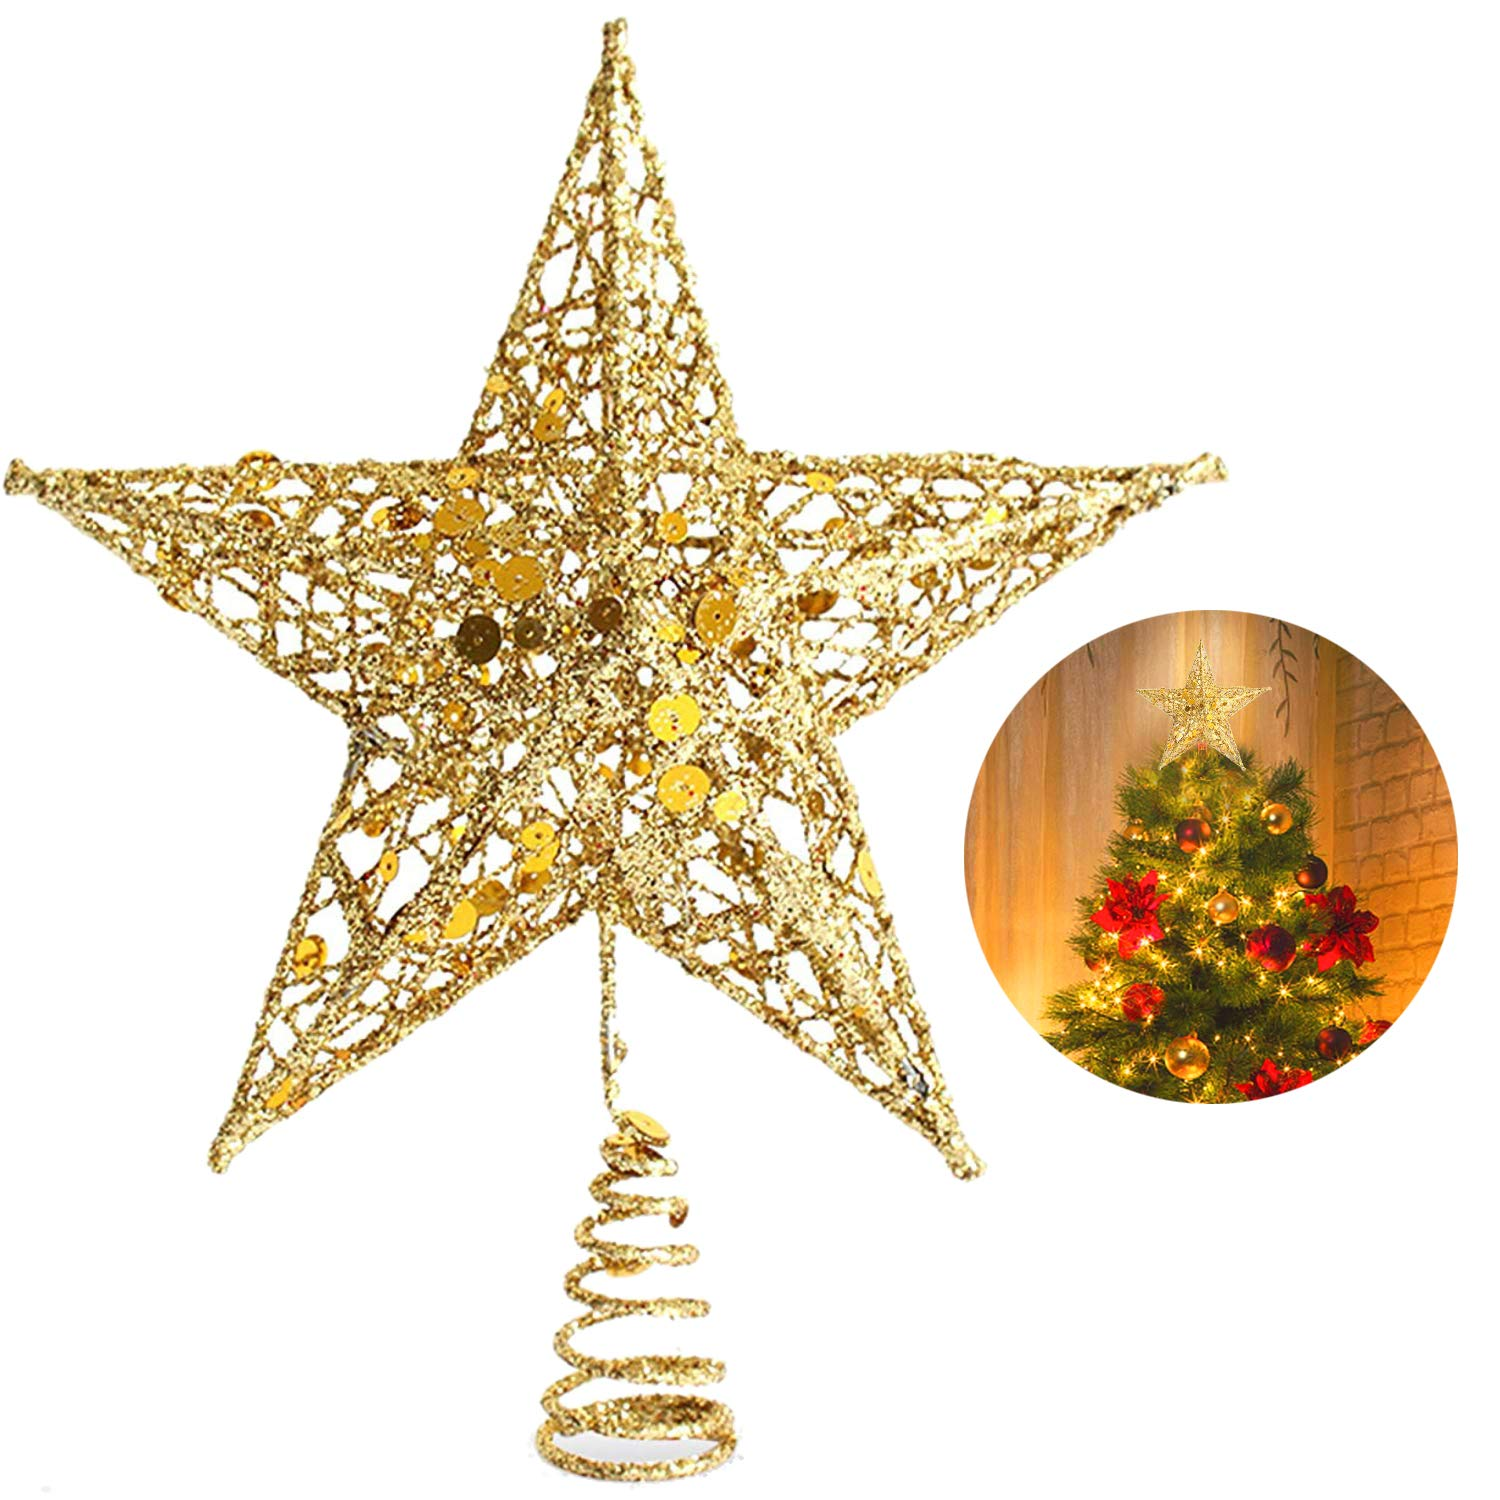 Star For A Christmas Tree: Christmas Tree Star Topper, 10 Inch Xmas Tree Topper Star